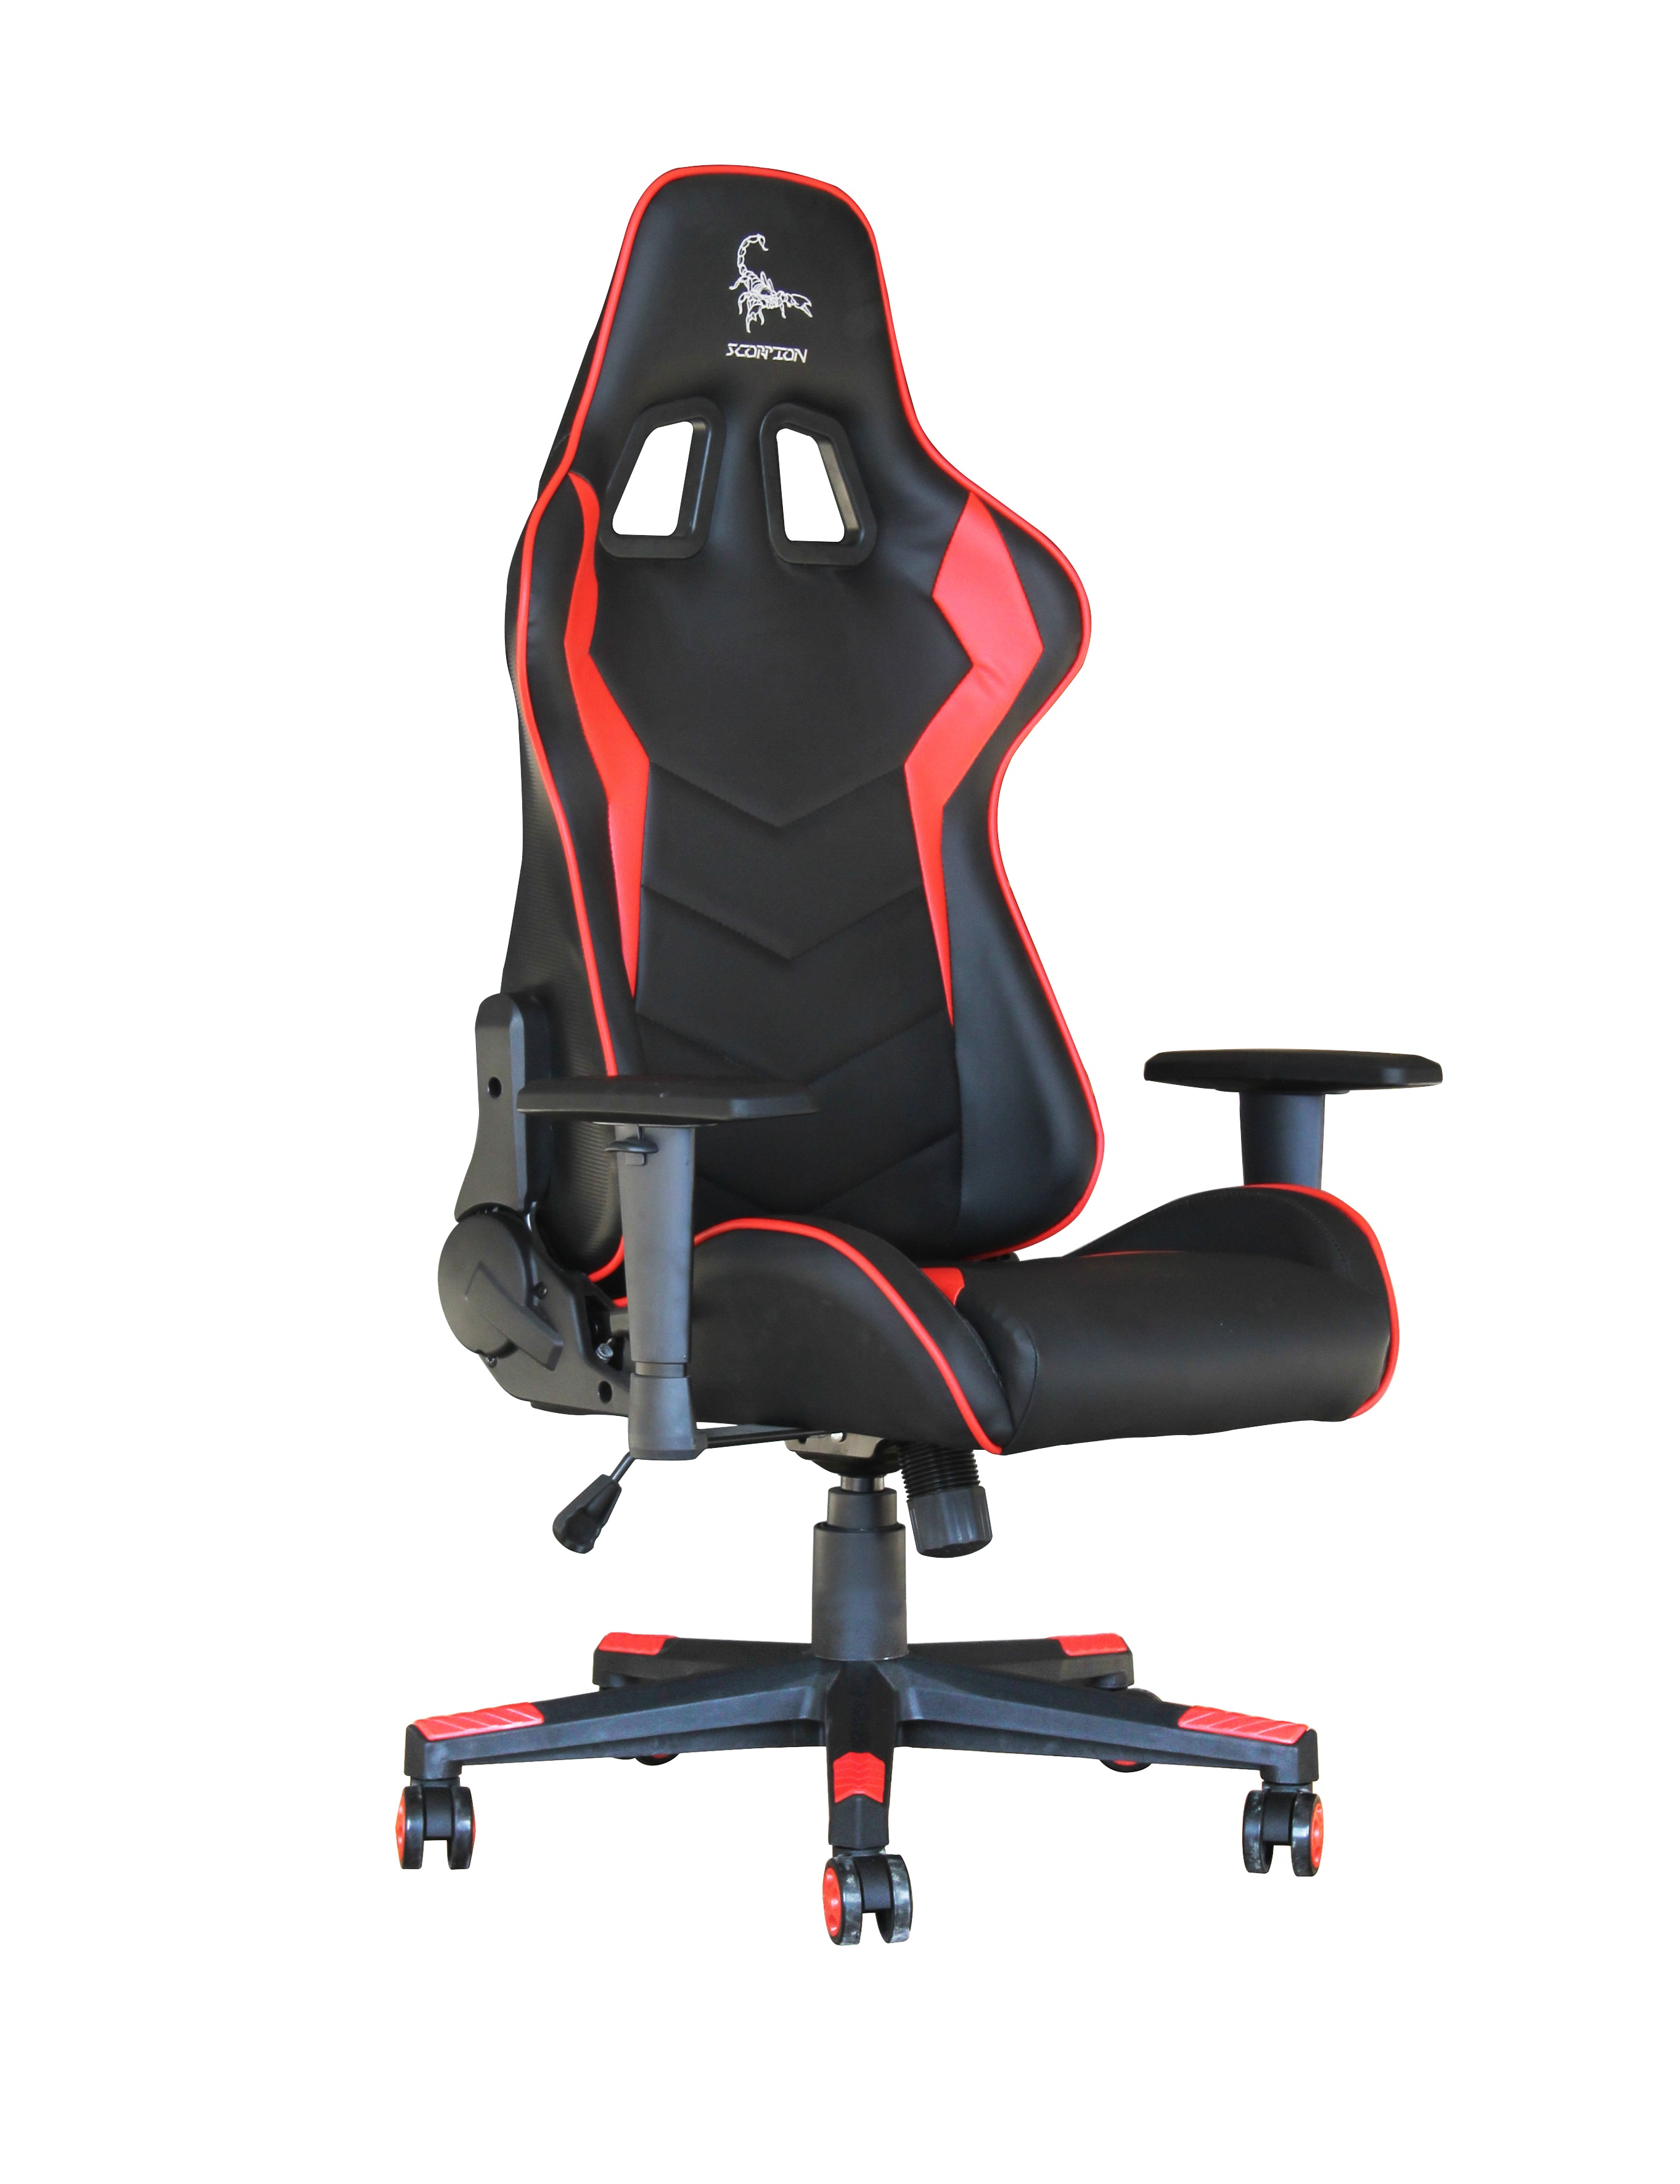 Groovy Gaming Chair Scorpion Black Red Skin Gc Scorpion 03 Squirreltailoven Fun Painted Chair Ideas Images Squirreltailovenorg